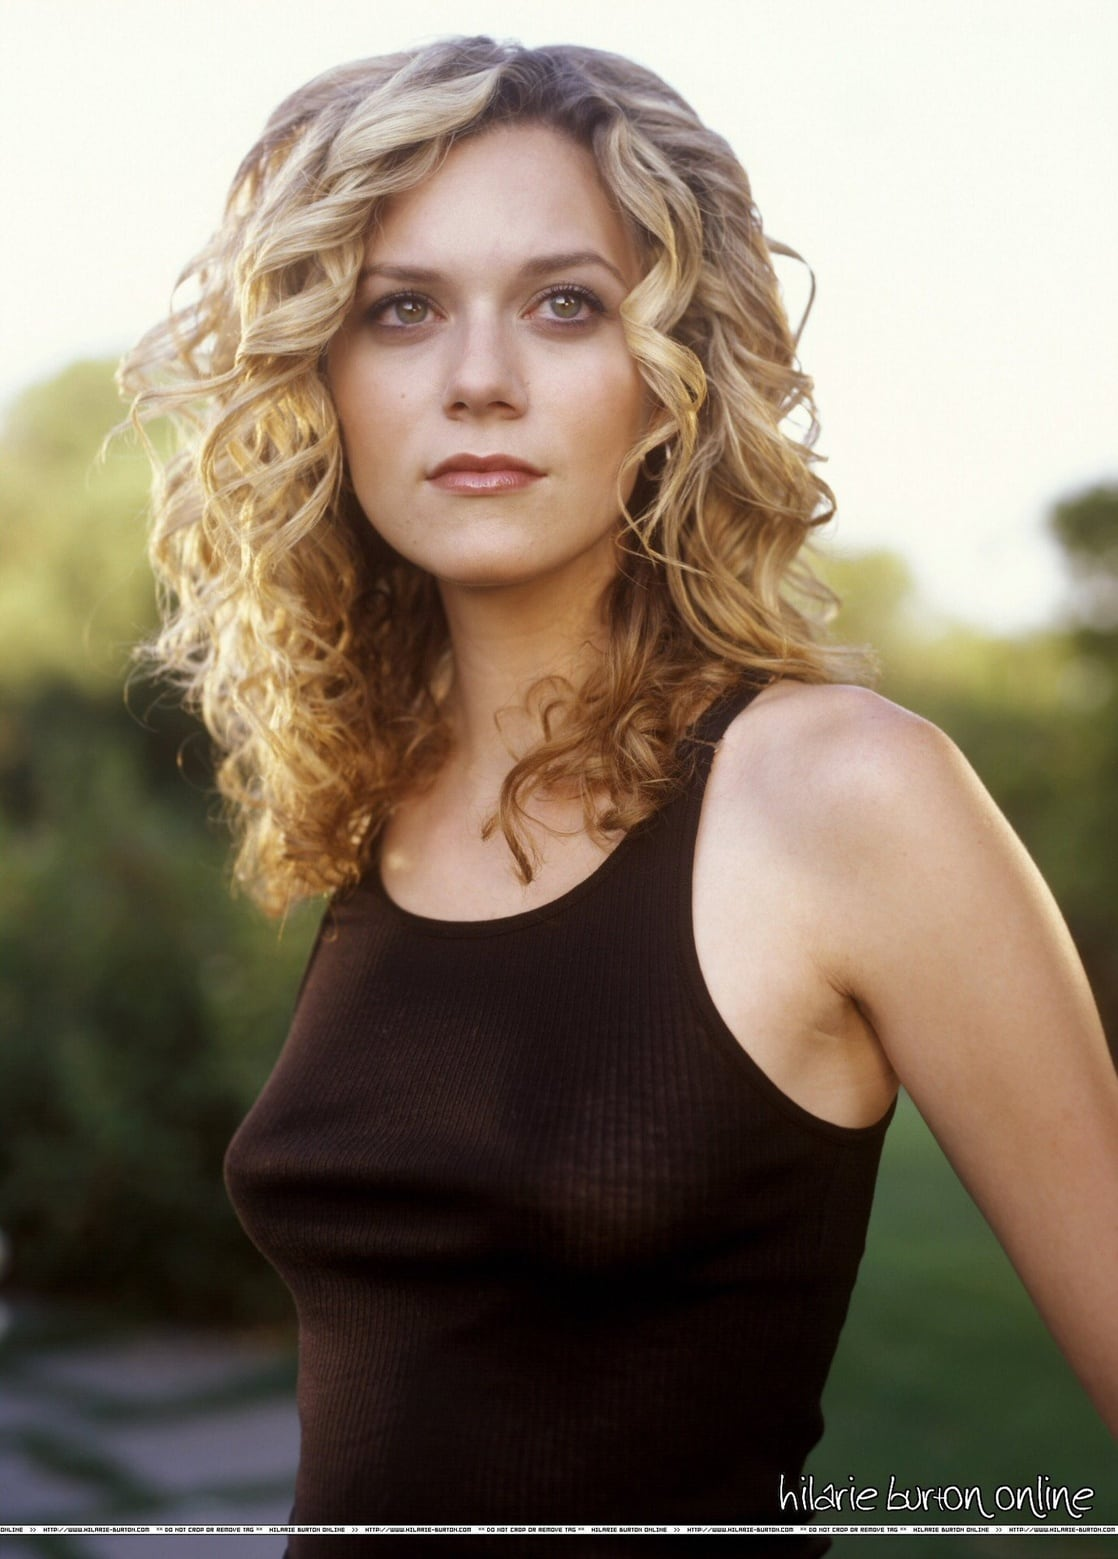 Picture Of Hilarie Burton